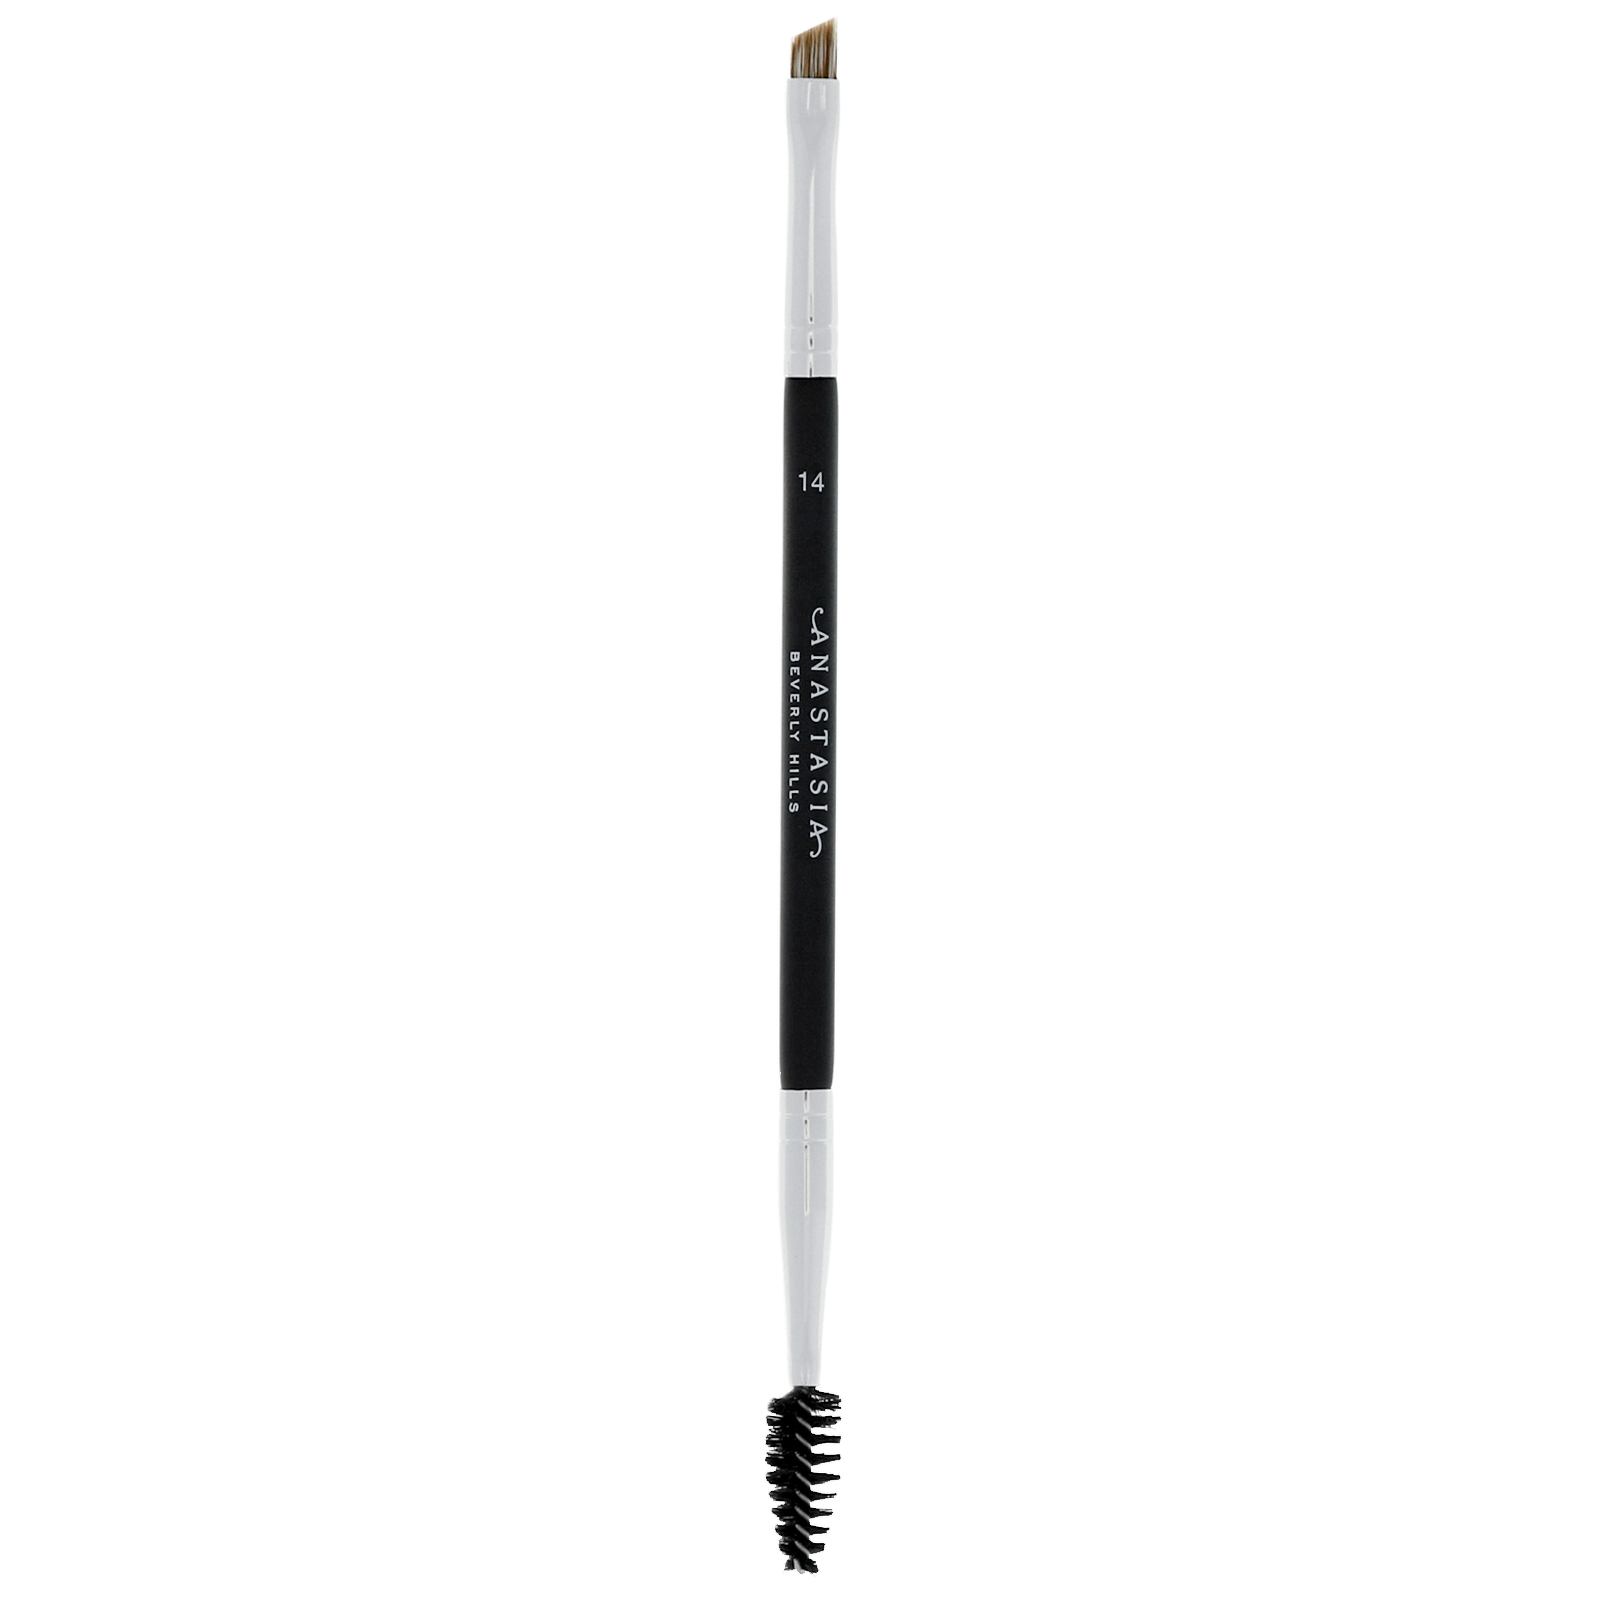 ANASTASIA BEVERLY HILLS Makeup Brushes 14 Dual-Ended Firm Detail Brush